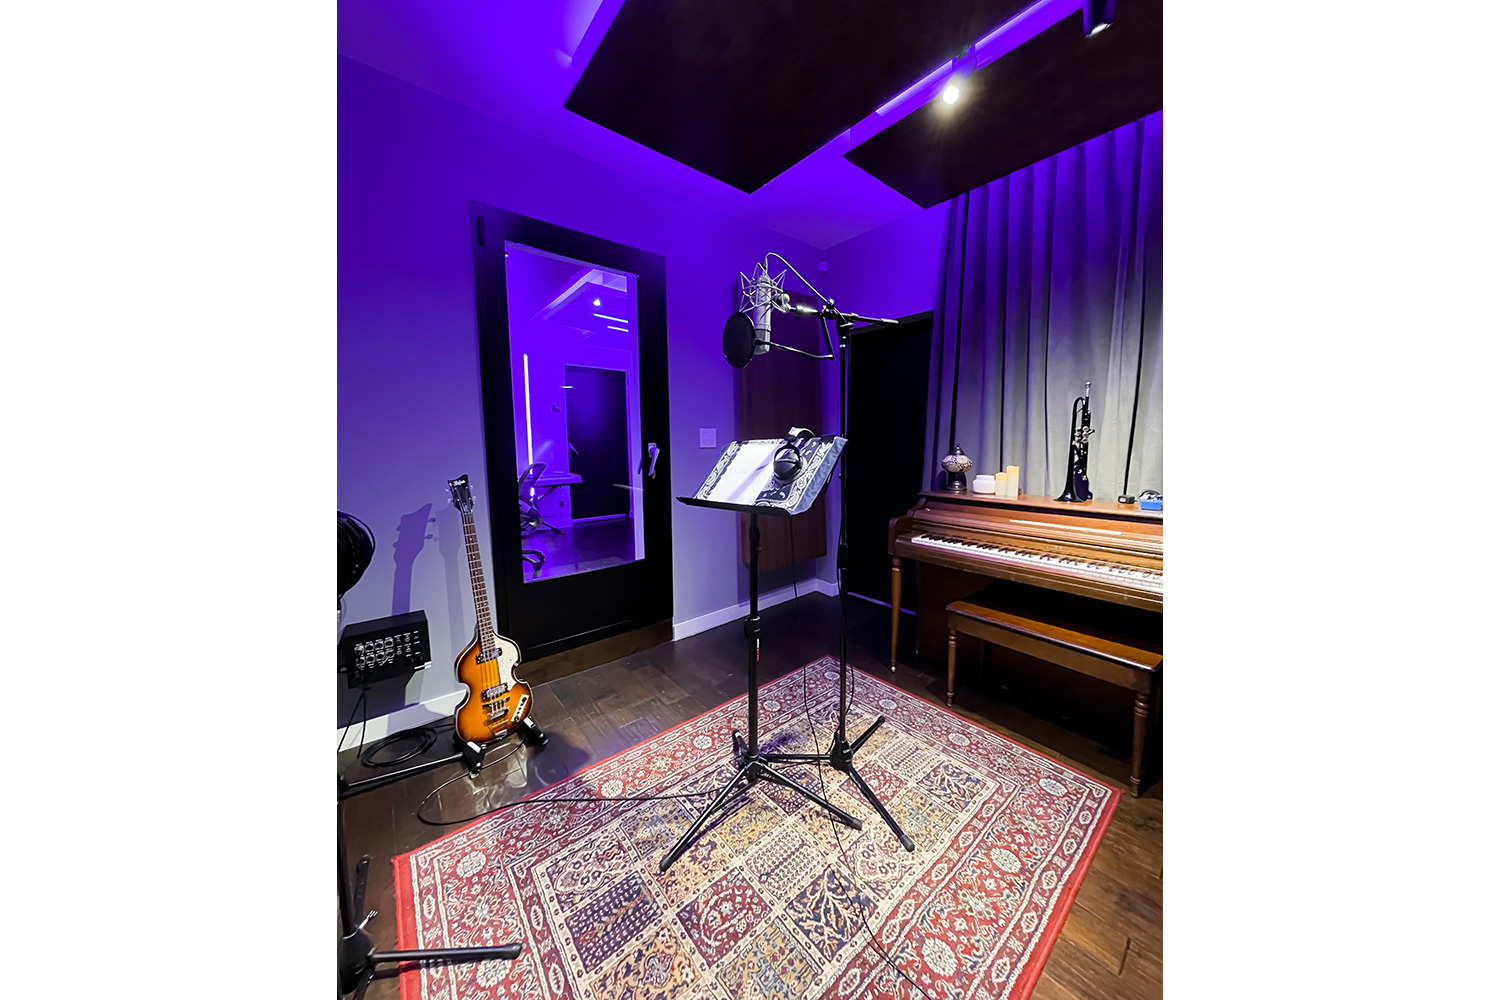 Groovyland Studios Live Room in Miami, FL. Designed by WSDG and owned by producer David Molho.